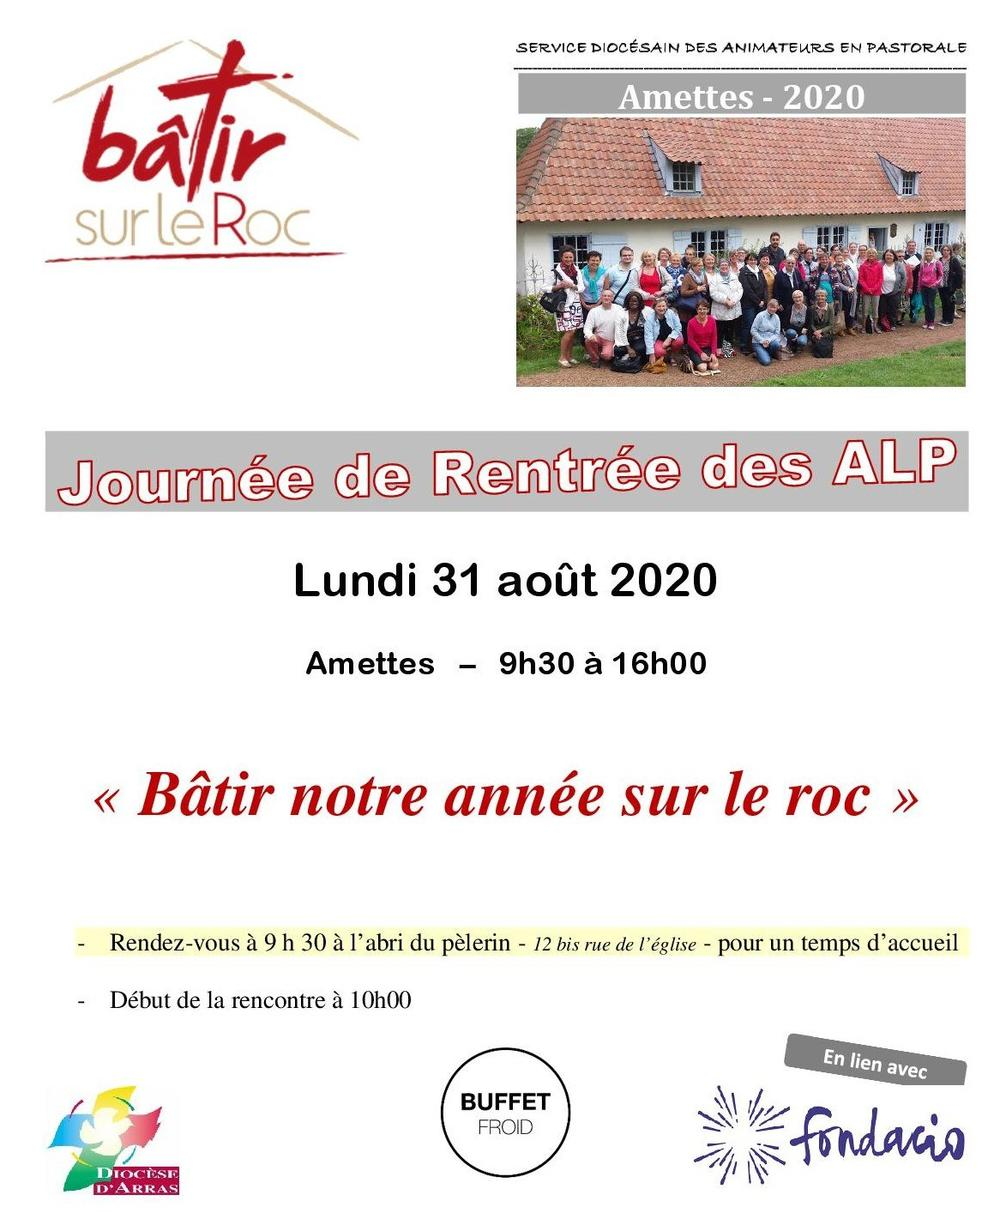 tract Amettes aout 2020 s2